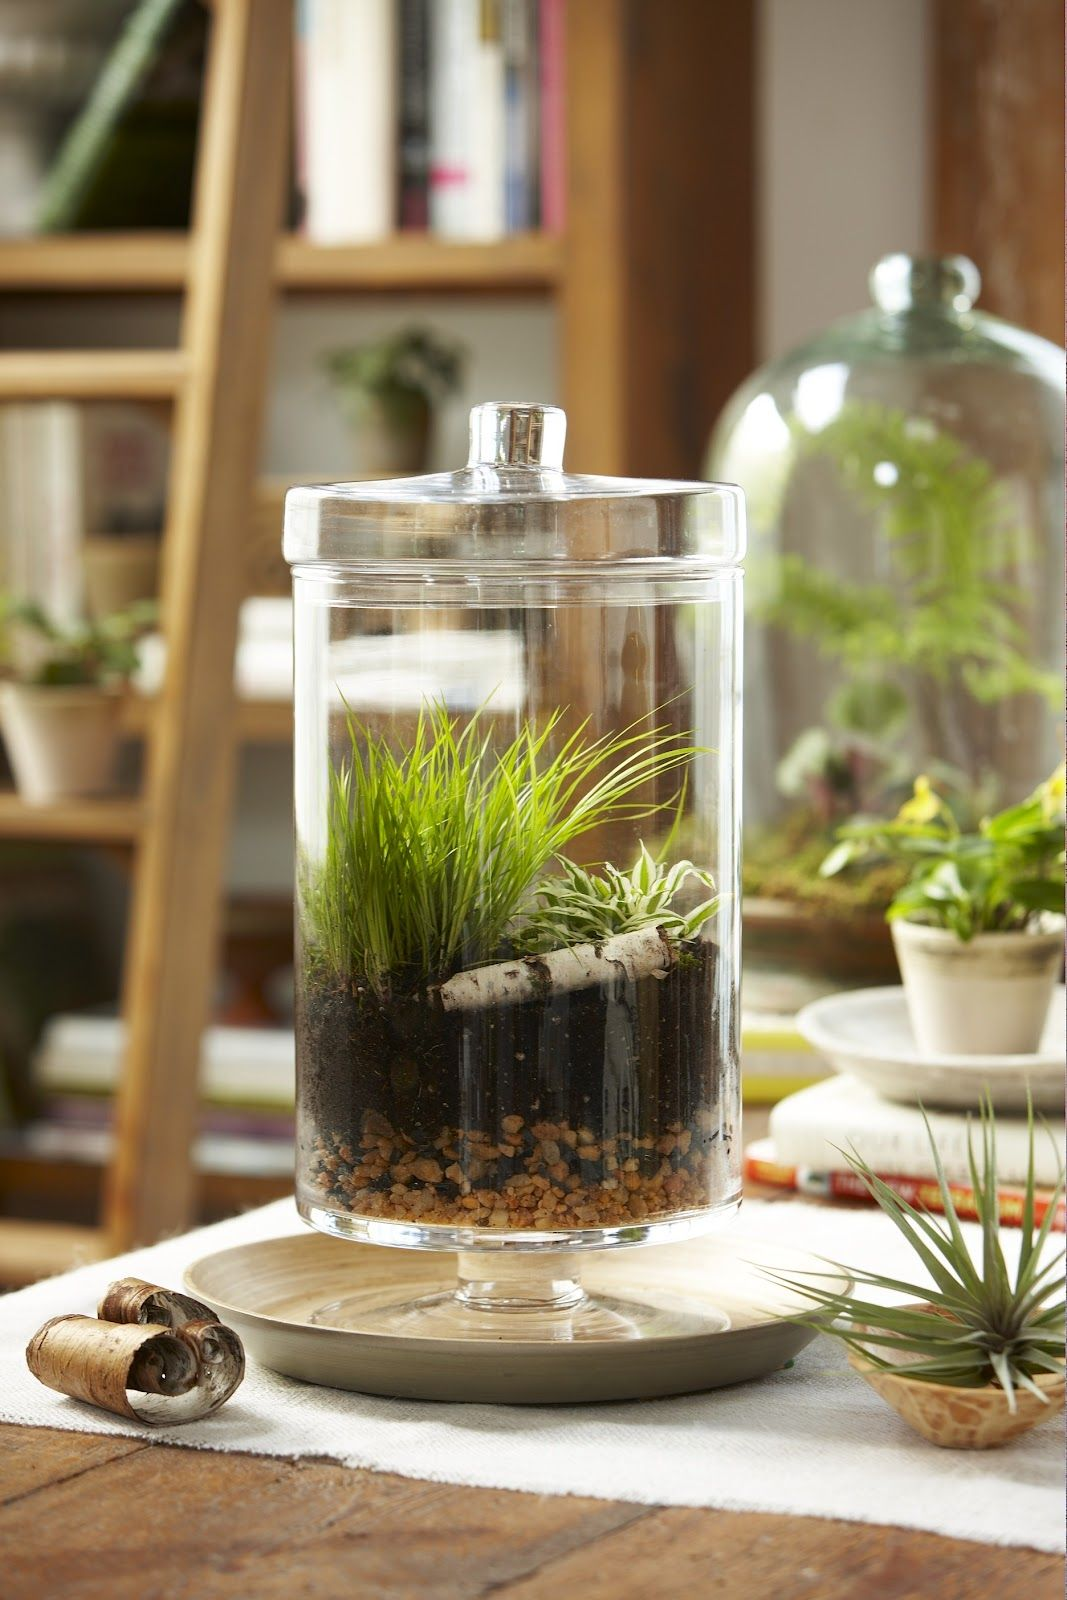 How to build a Terrarium with Expert Tovah Martin | Containers That